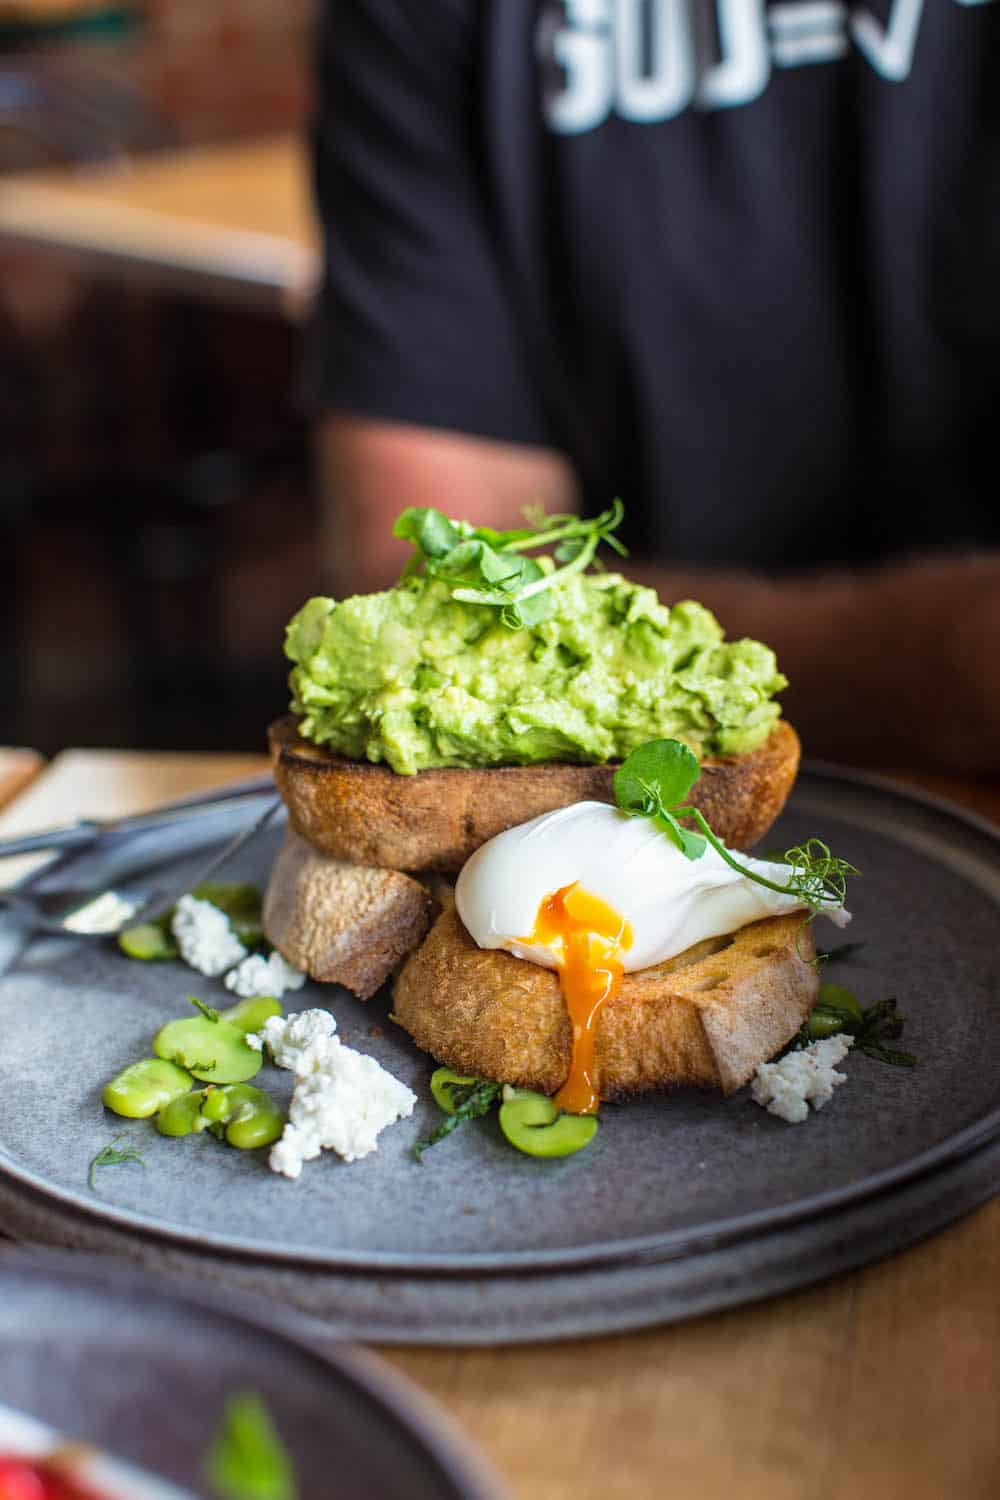 Cuisines To Try In Melbourne Melbourne Travel Guide From Coffee To Brunch The Best Places In